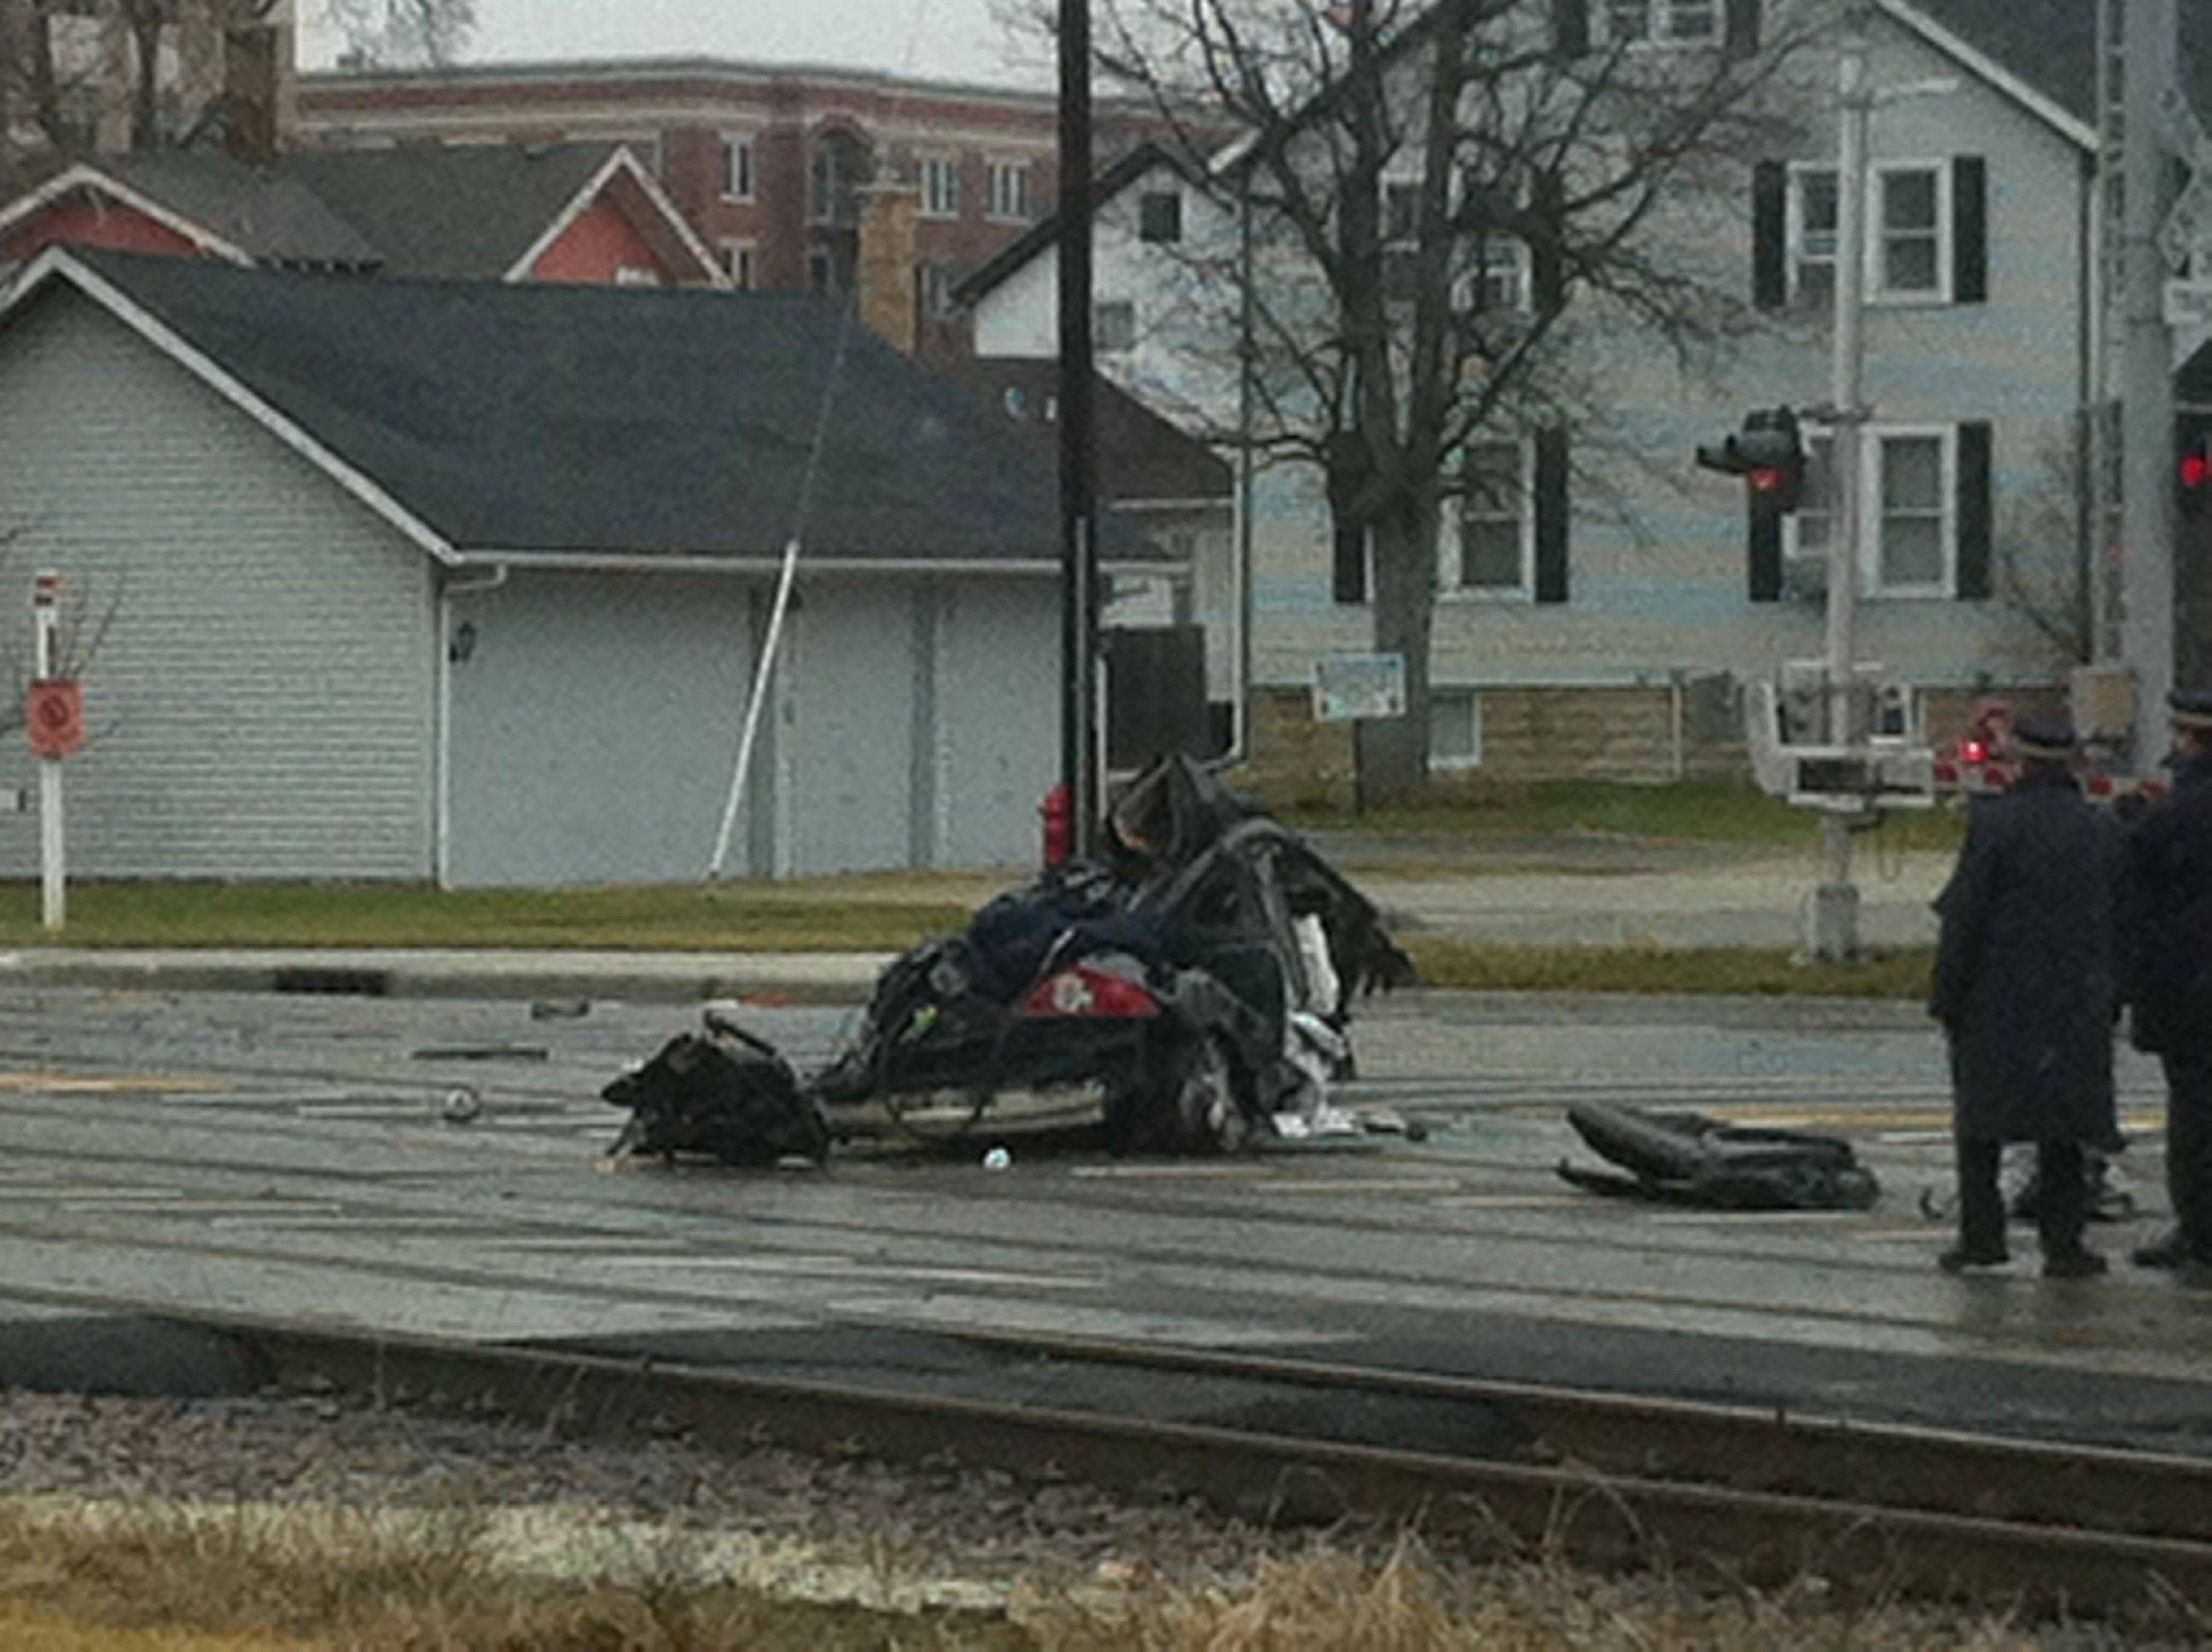 This is the vehicle that was hit by a train Tuesday morning in Palatine.